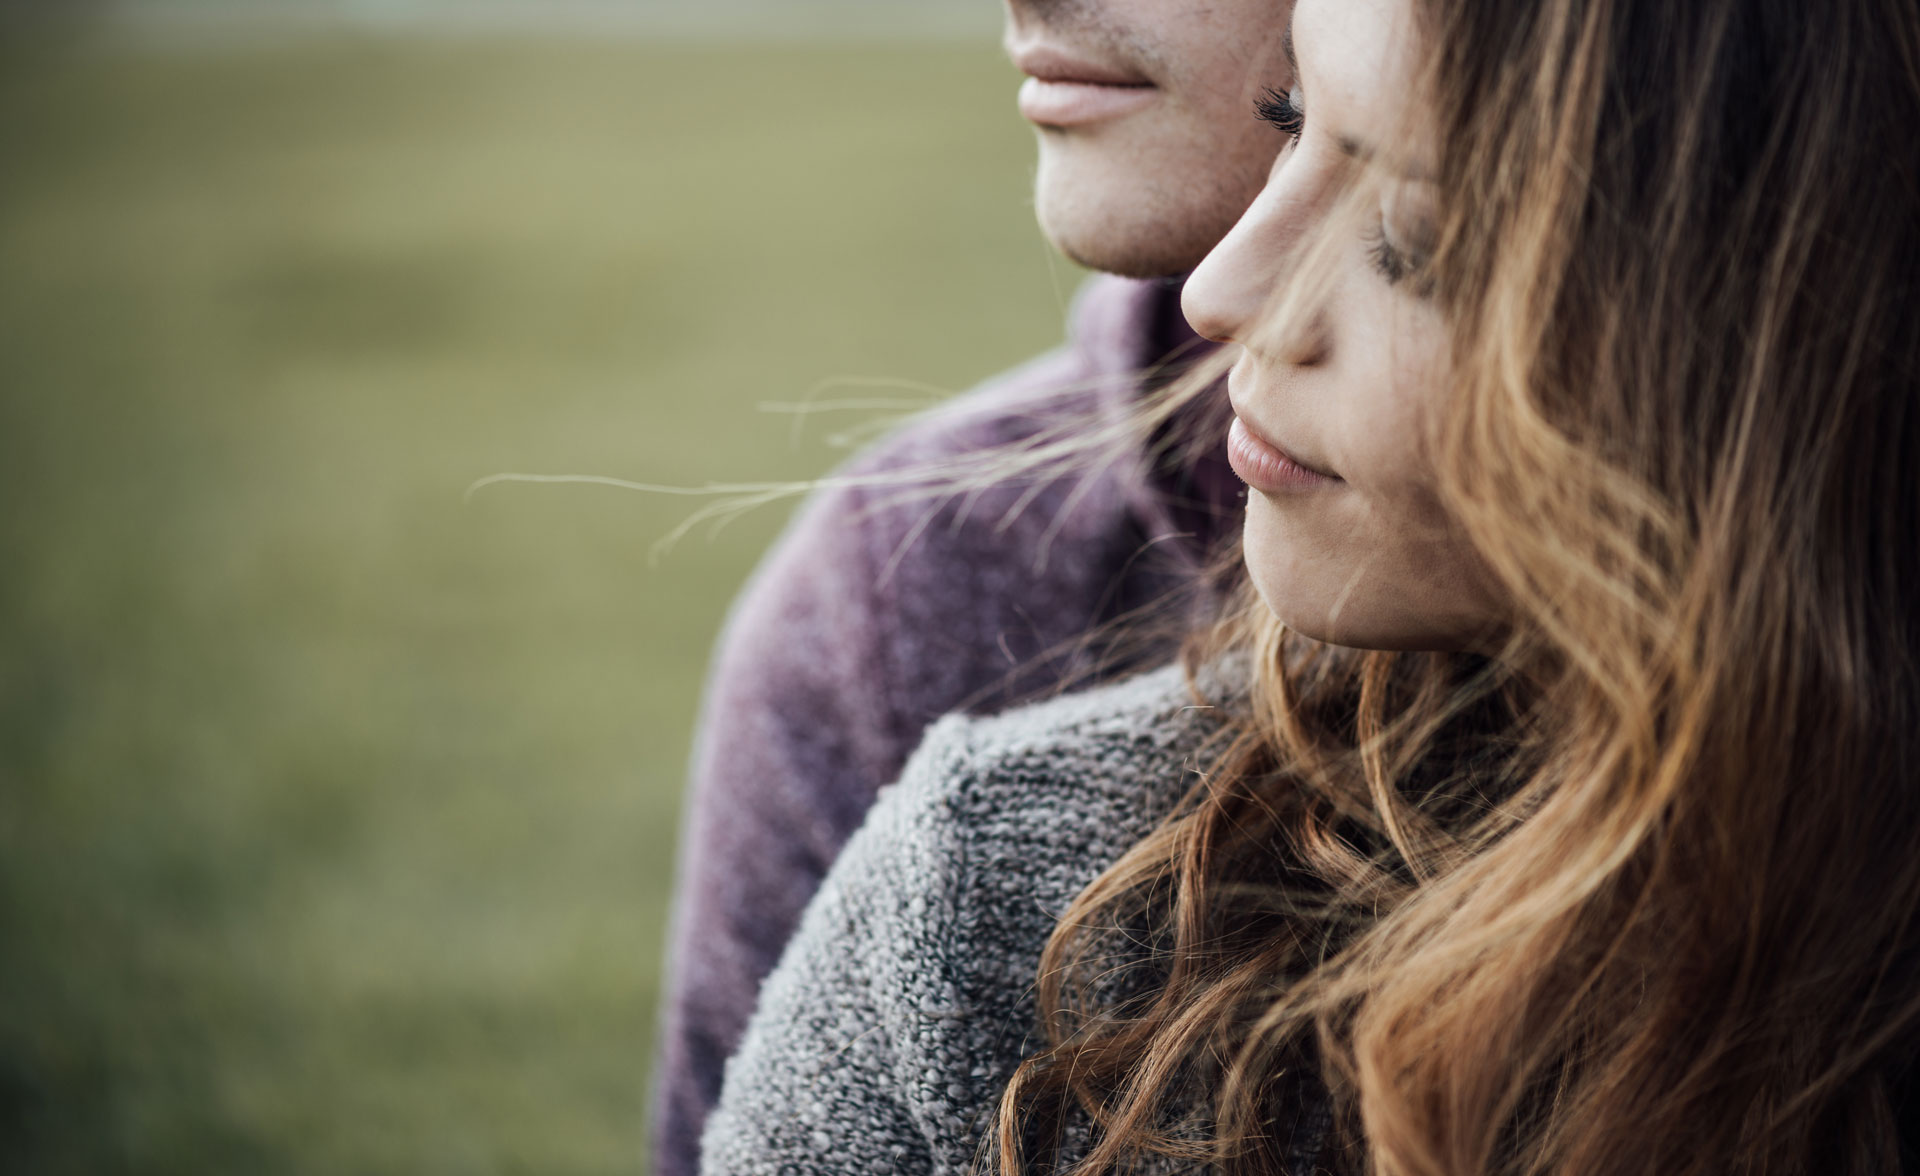 Building Trust and Commitment in Relationships